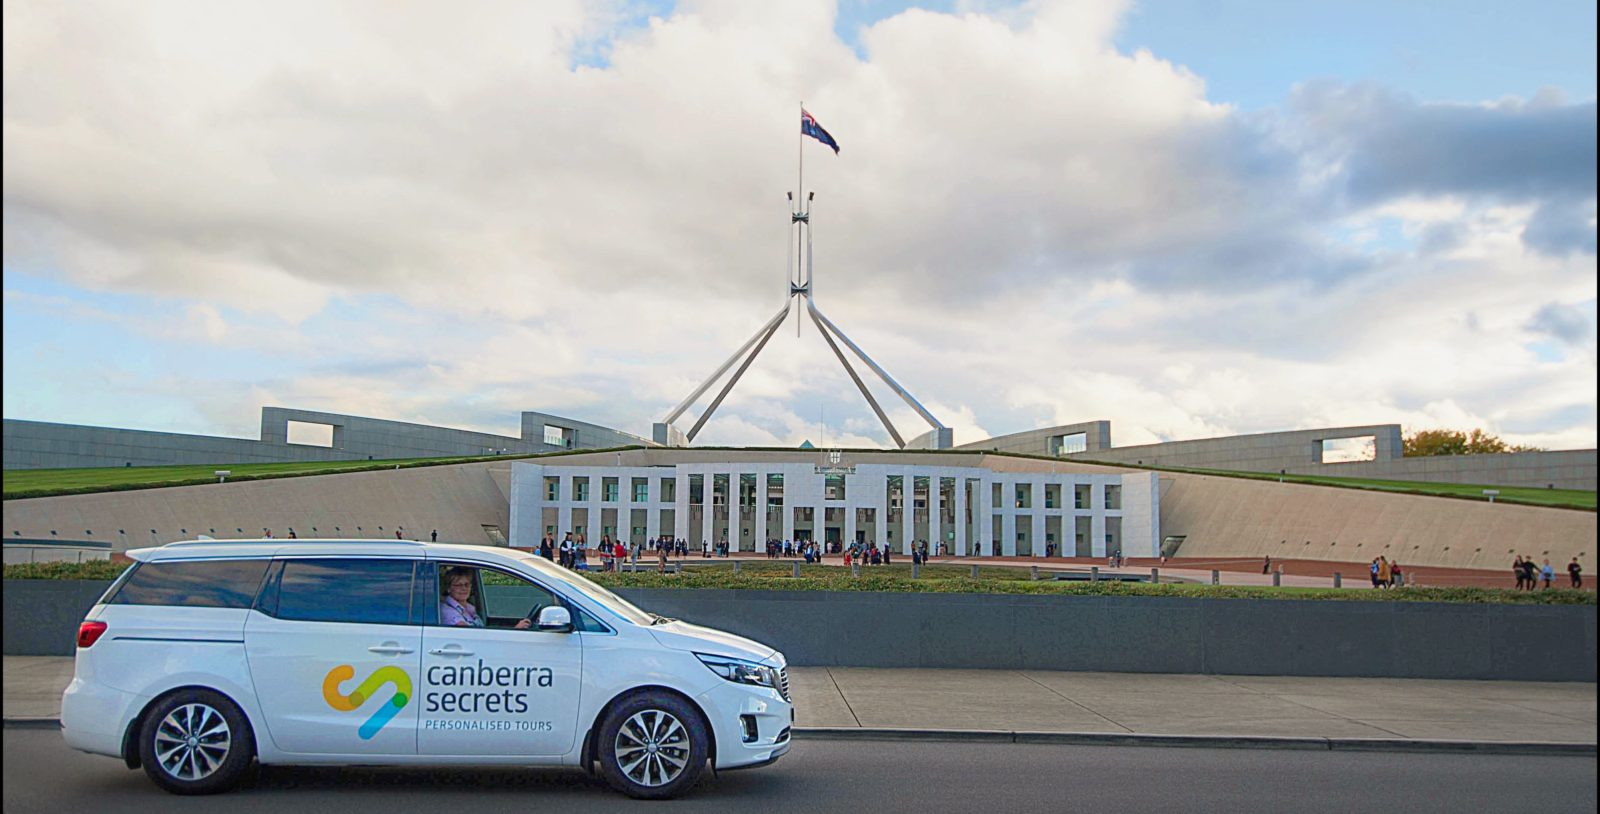 Canberra secrets vehicle in front of Parliament House